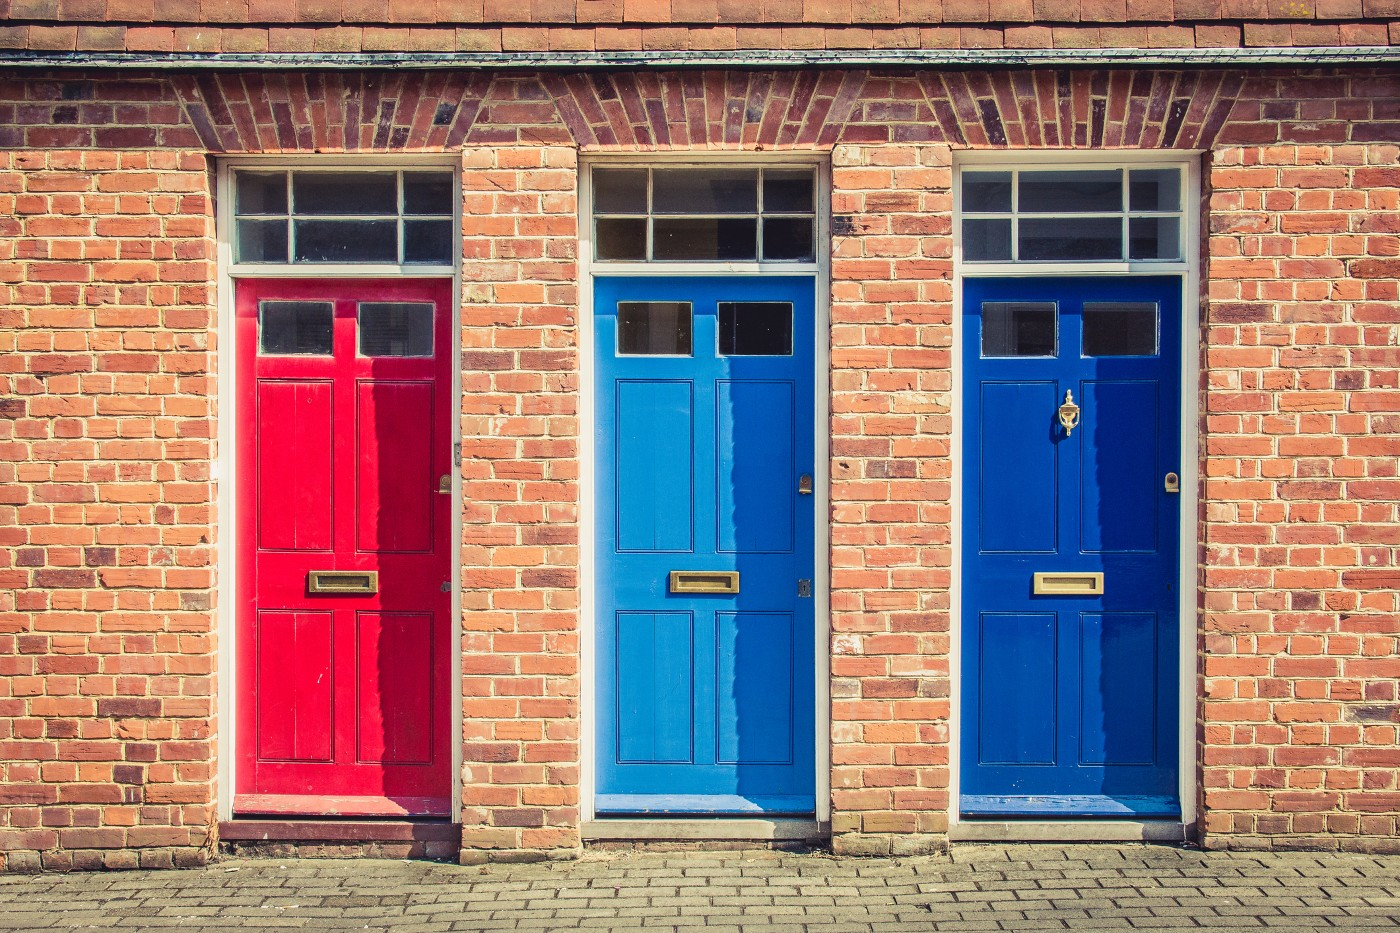 https://tickertapecdn.tdameritrade.com/assets/images/pages/md/Three doors on a brick building: Options trading strategies